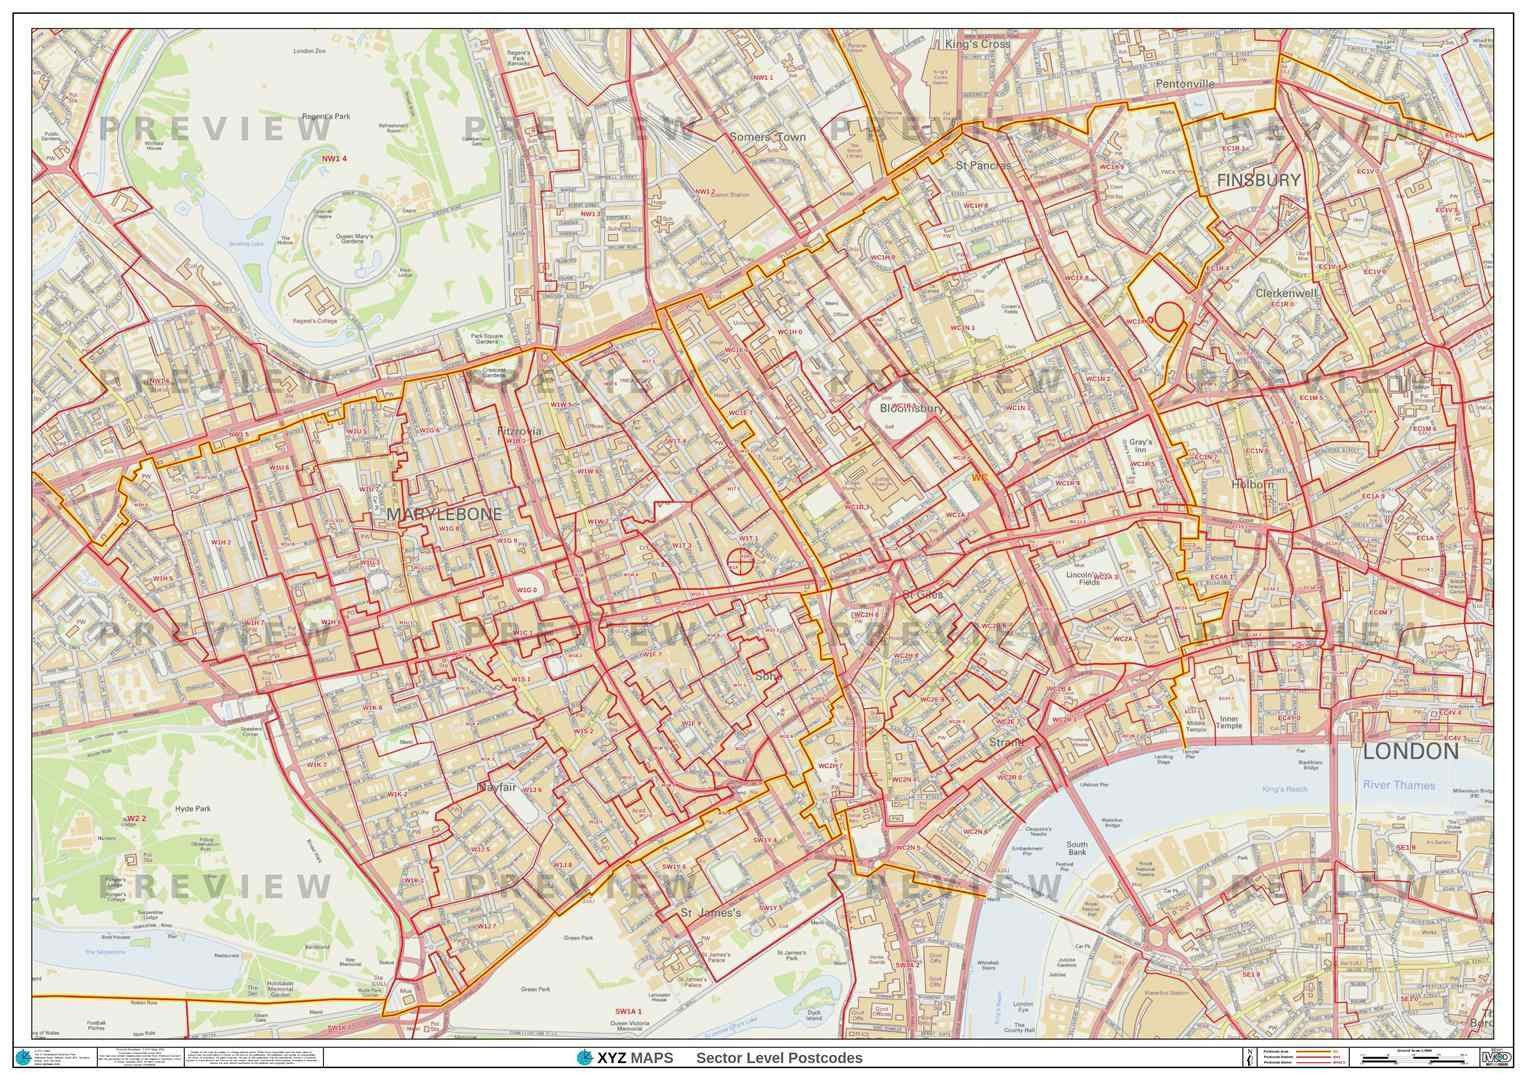 London Postcode Map For The Wc Postcode Area Gif Or Pdf Download